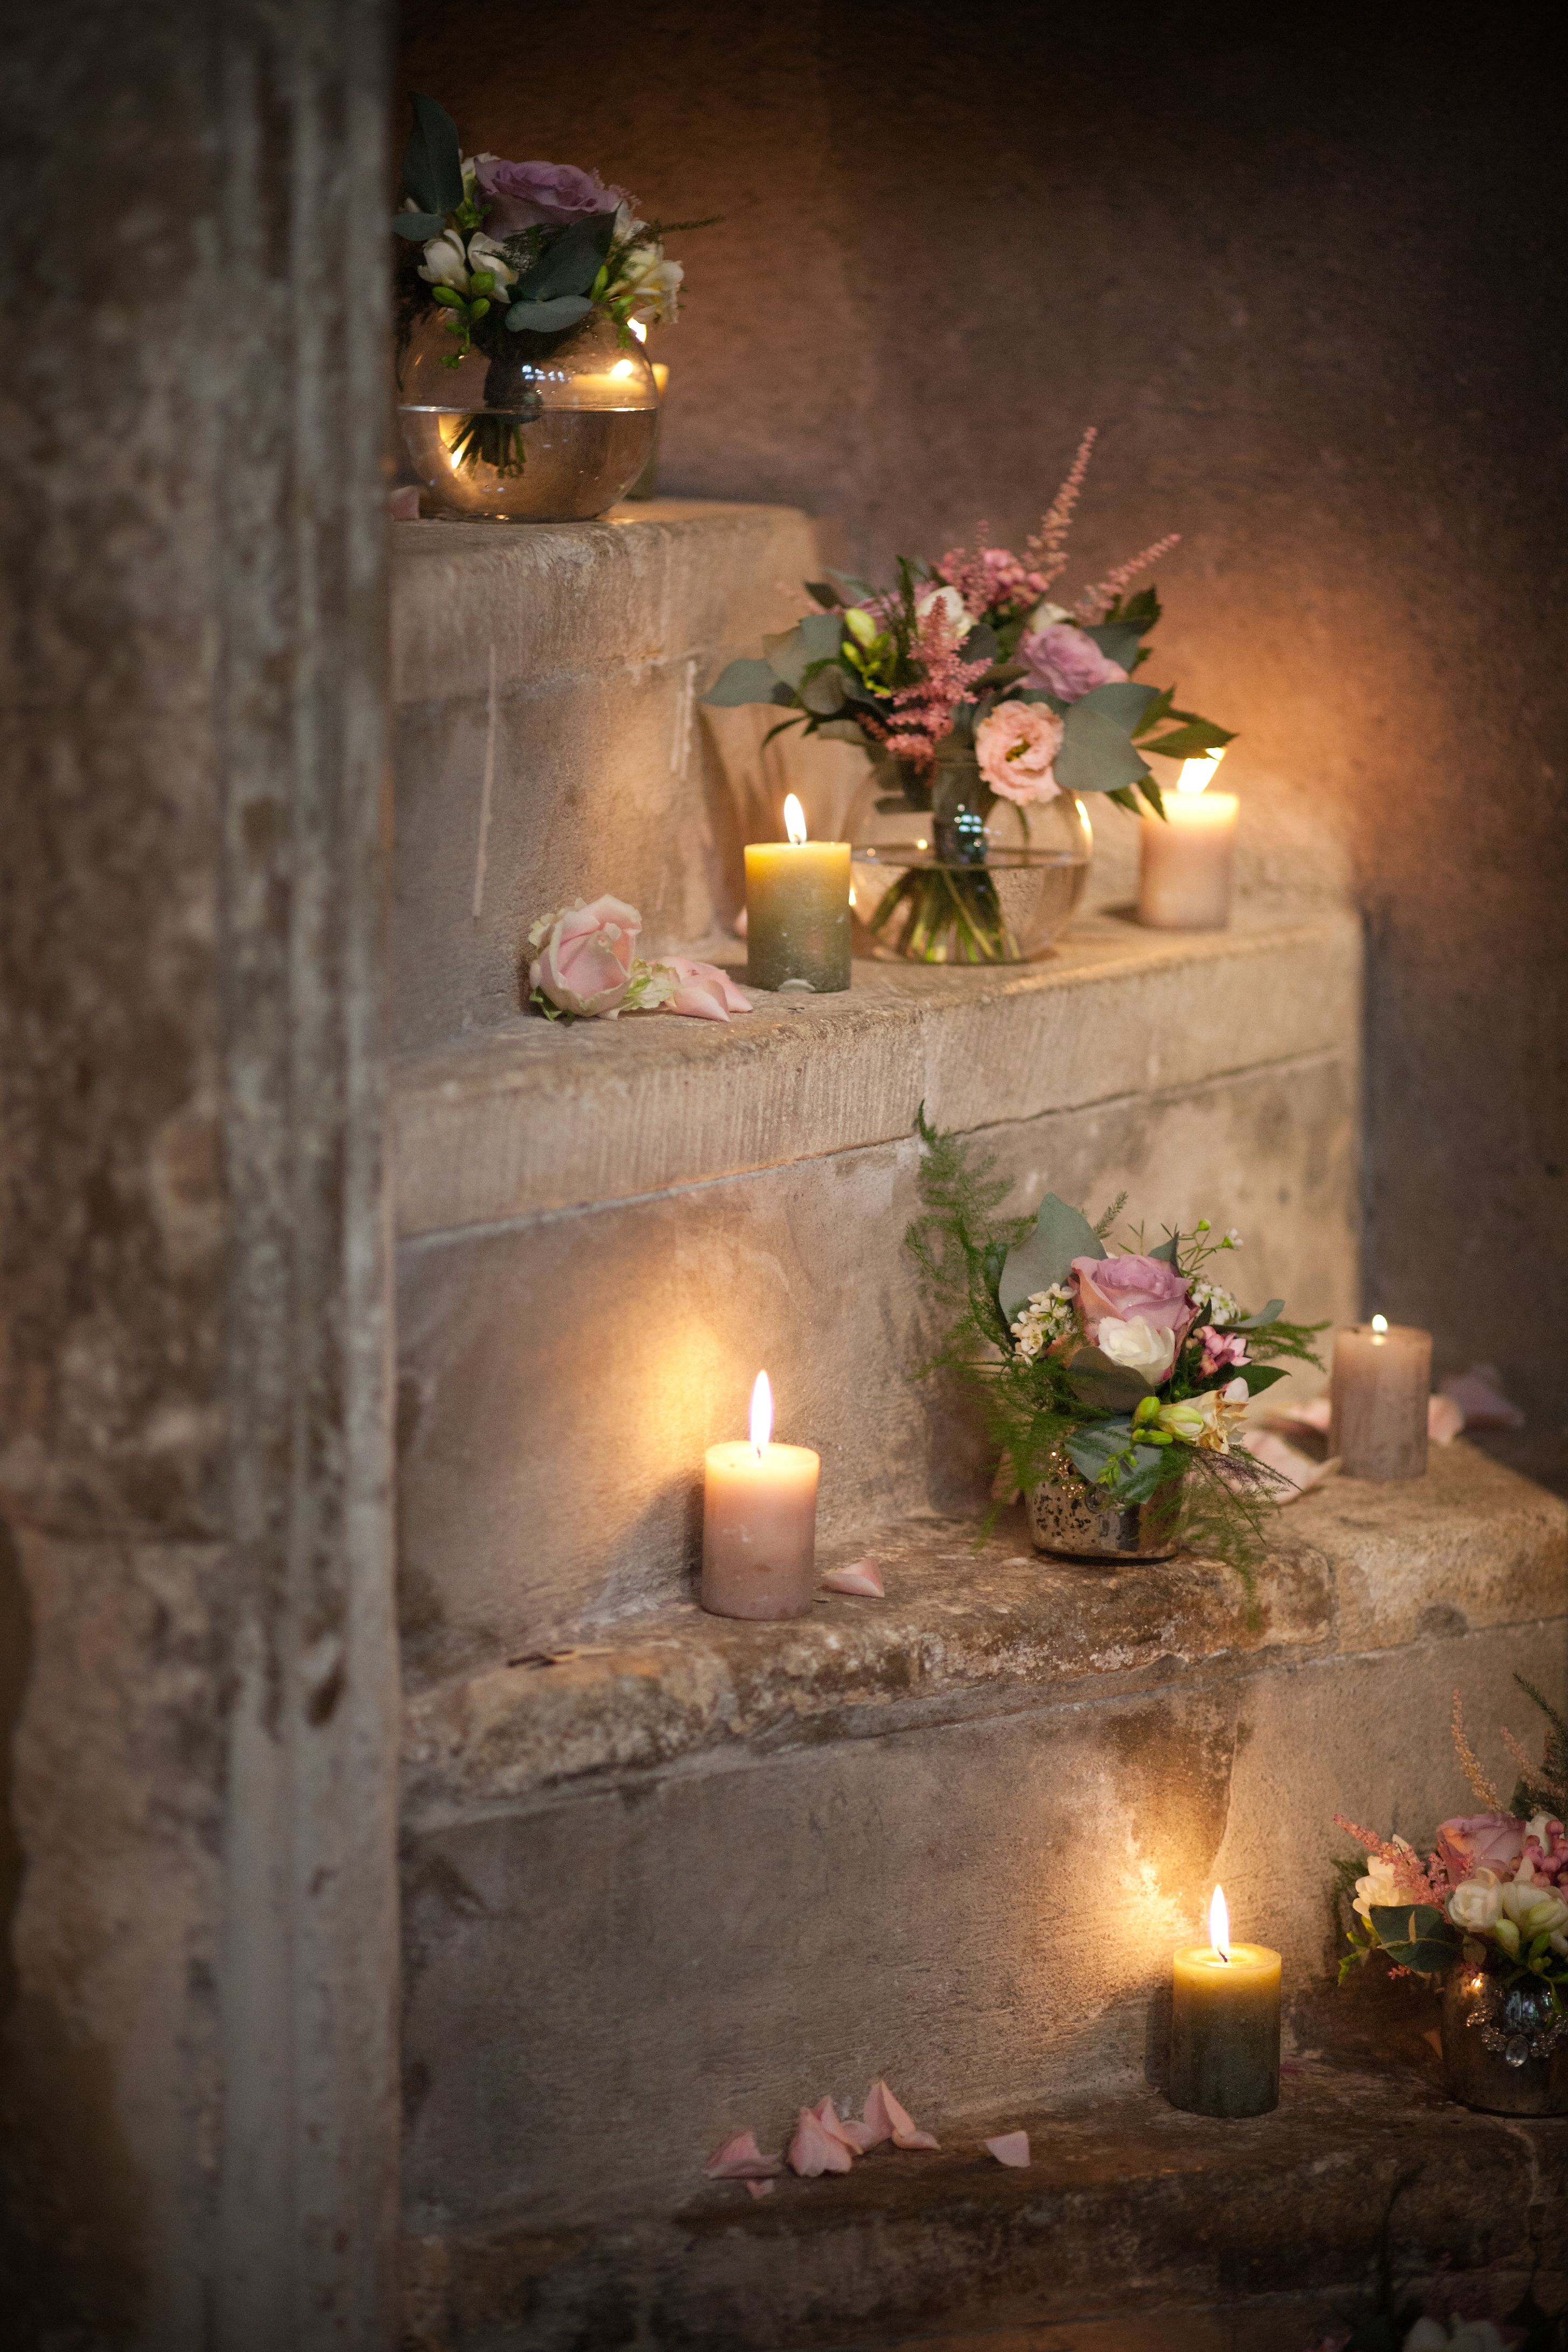 church wedding decorations candles%0A Stairway In Church